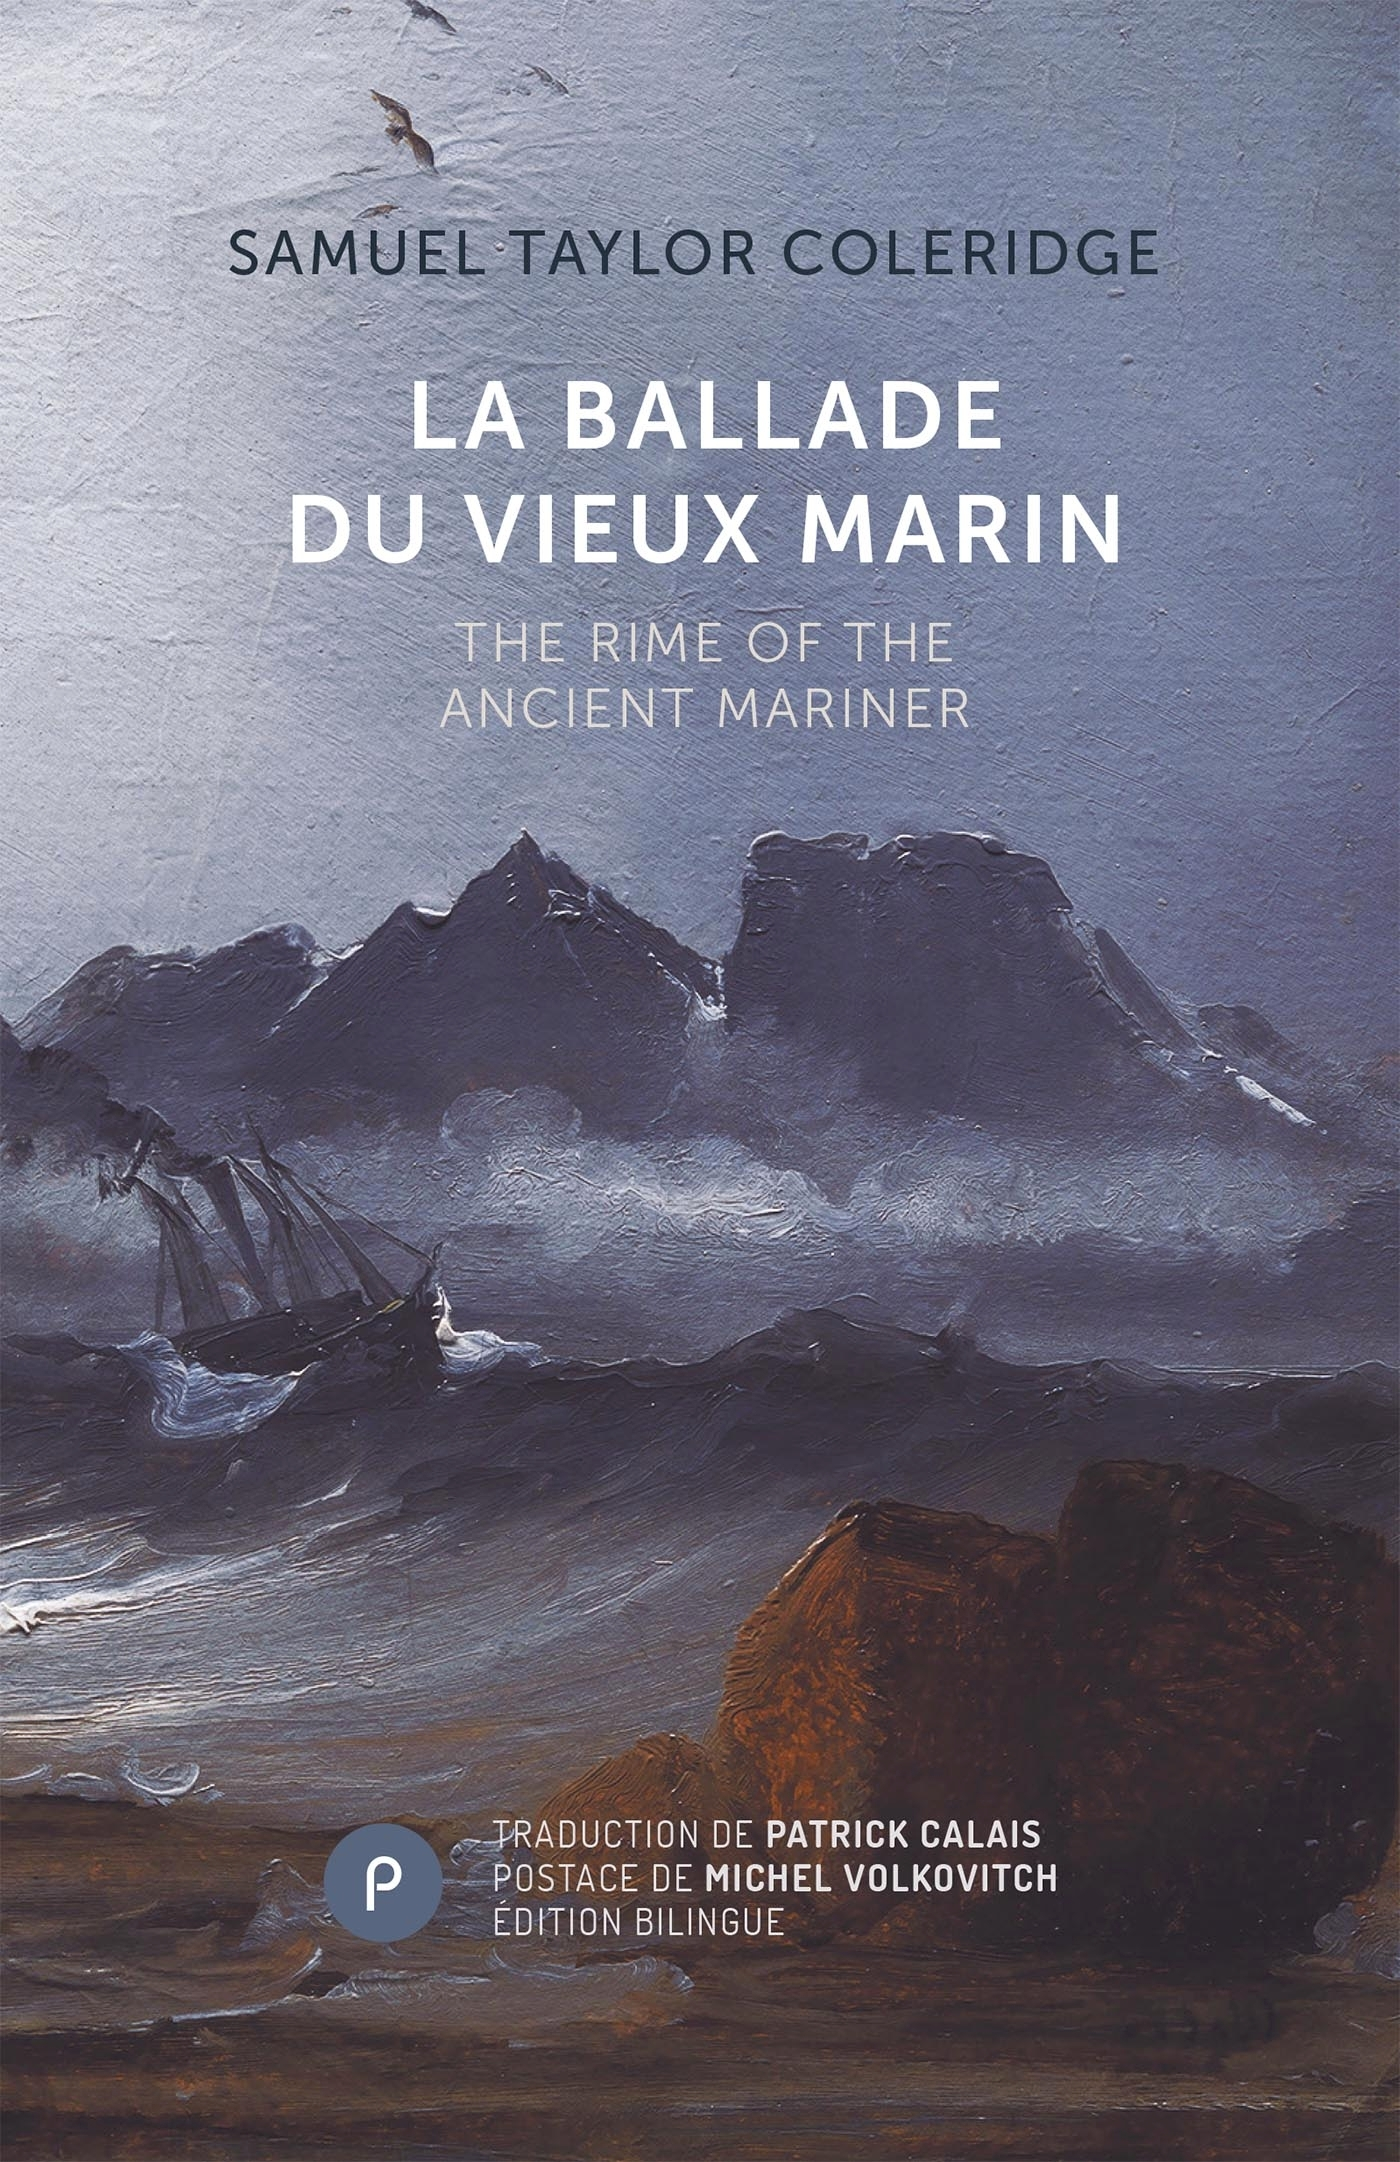 LA BALLADE DU VIEUX MARIN - THE RIME OF THE ANCIENT MARINE